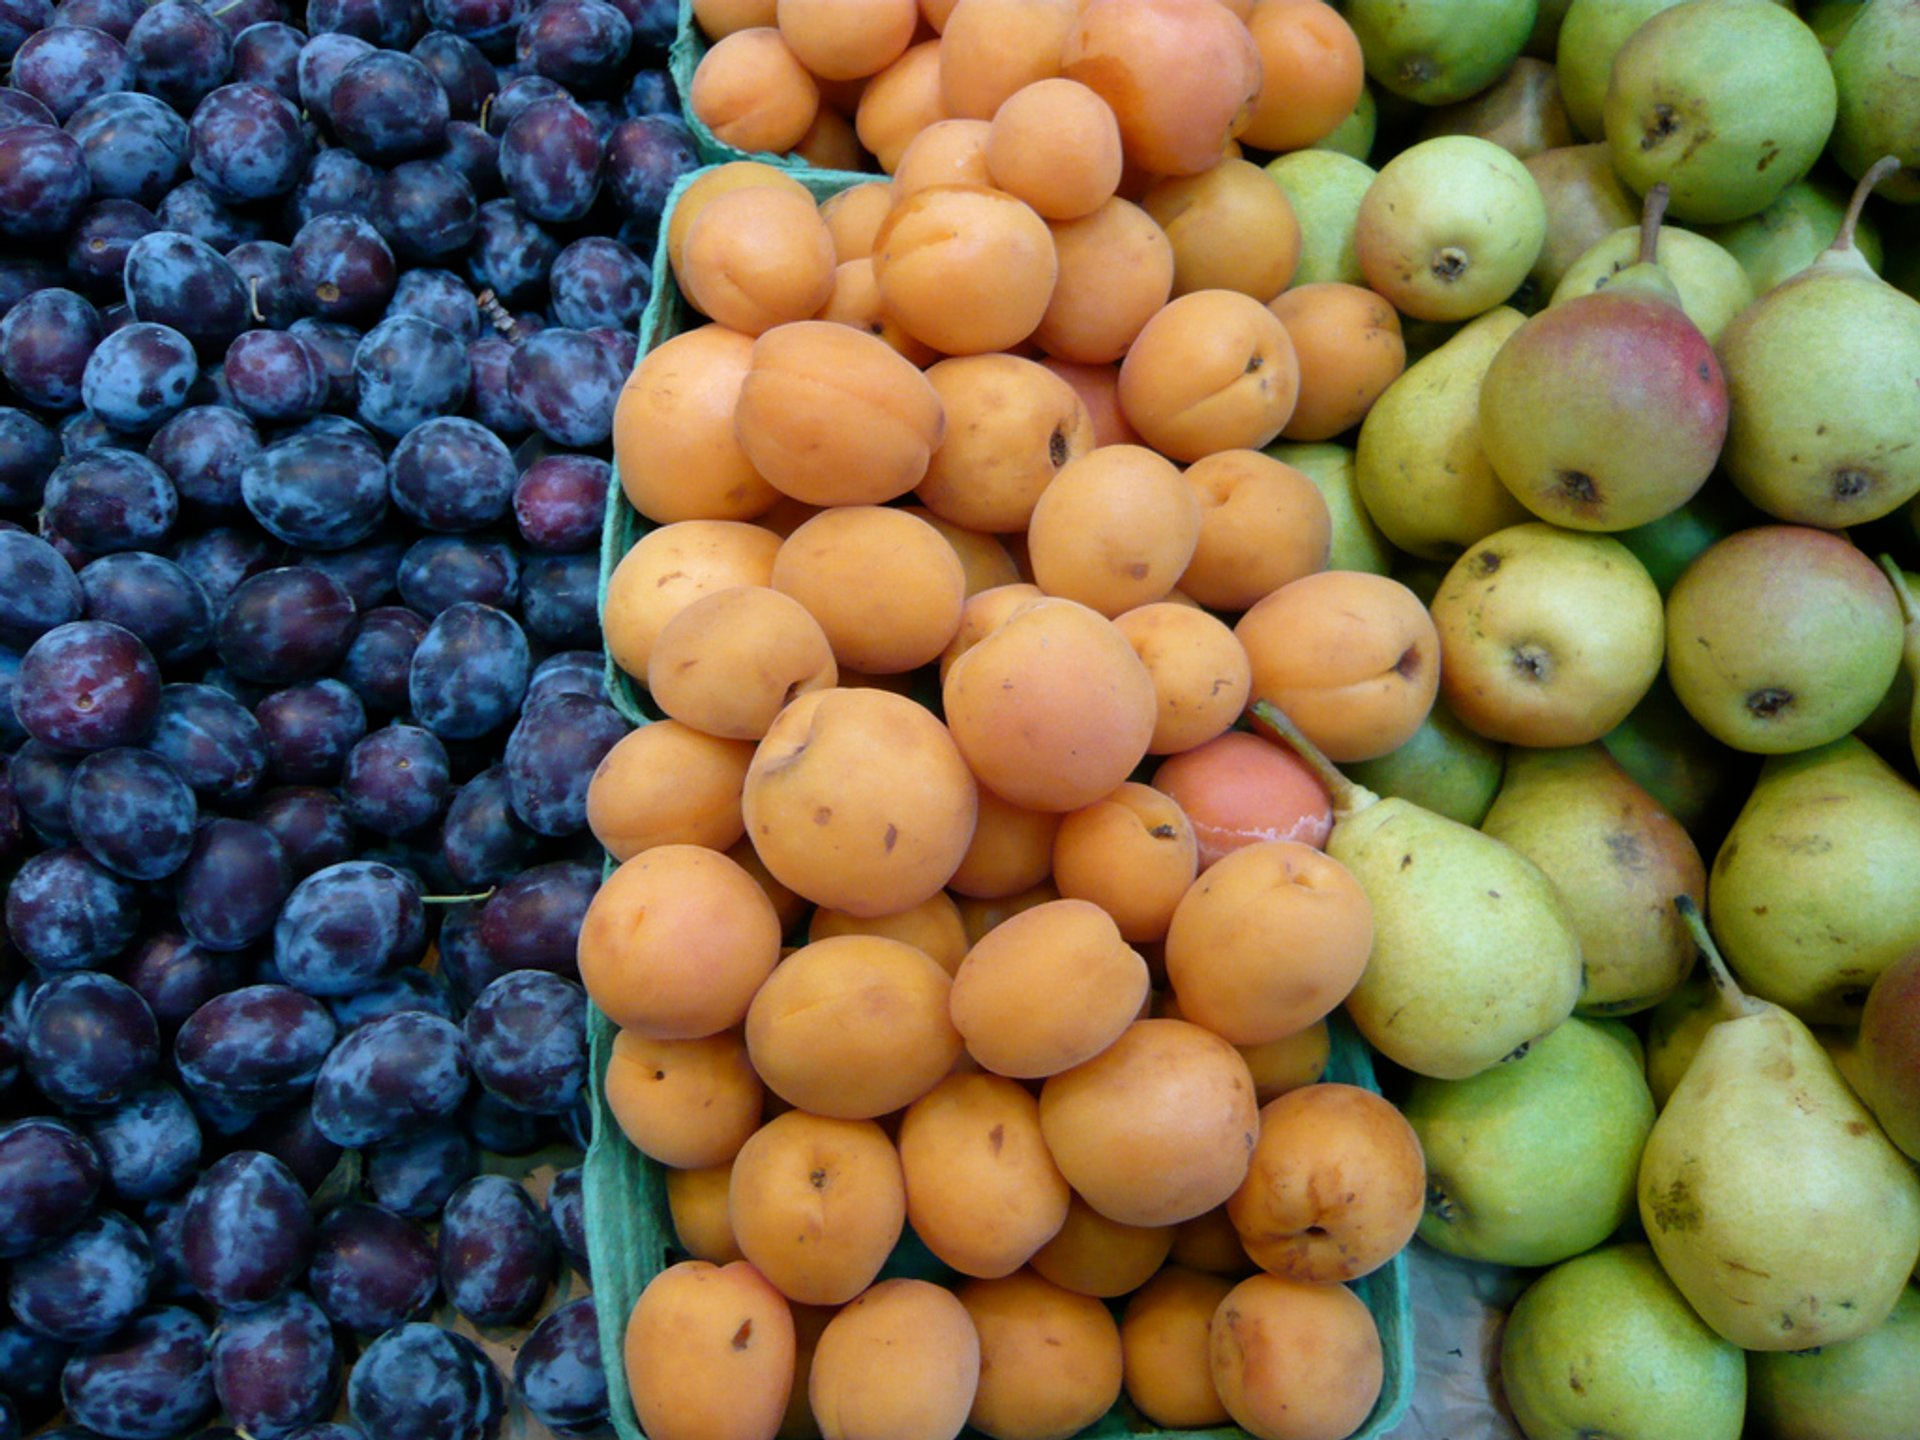 Plums, apricots, and pears at the Granville Island Public Market 2020